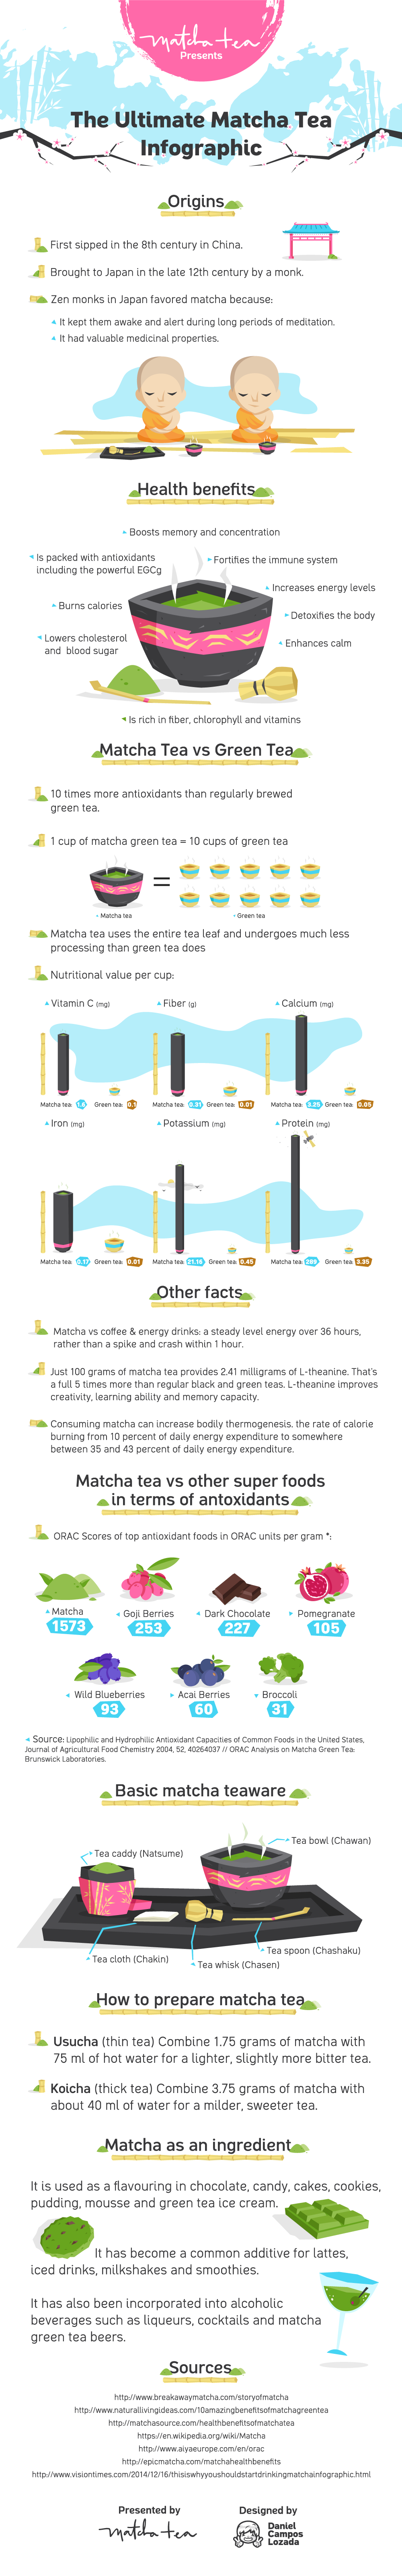 Tease Tea Matcha Benefits Infographic